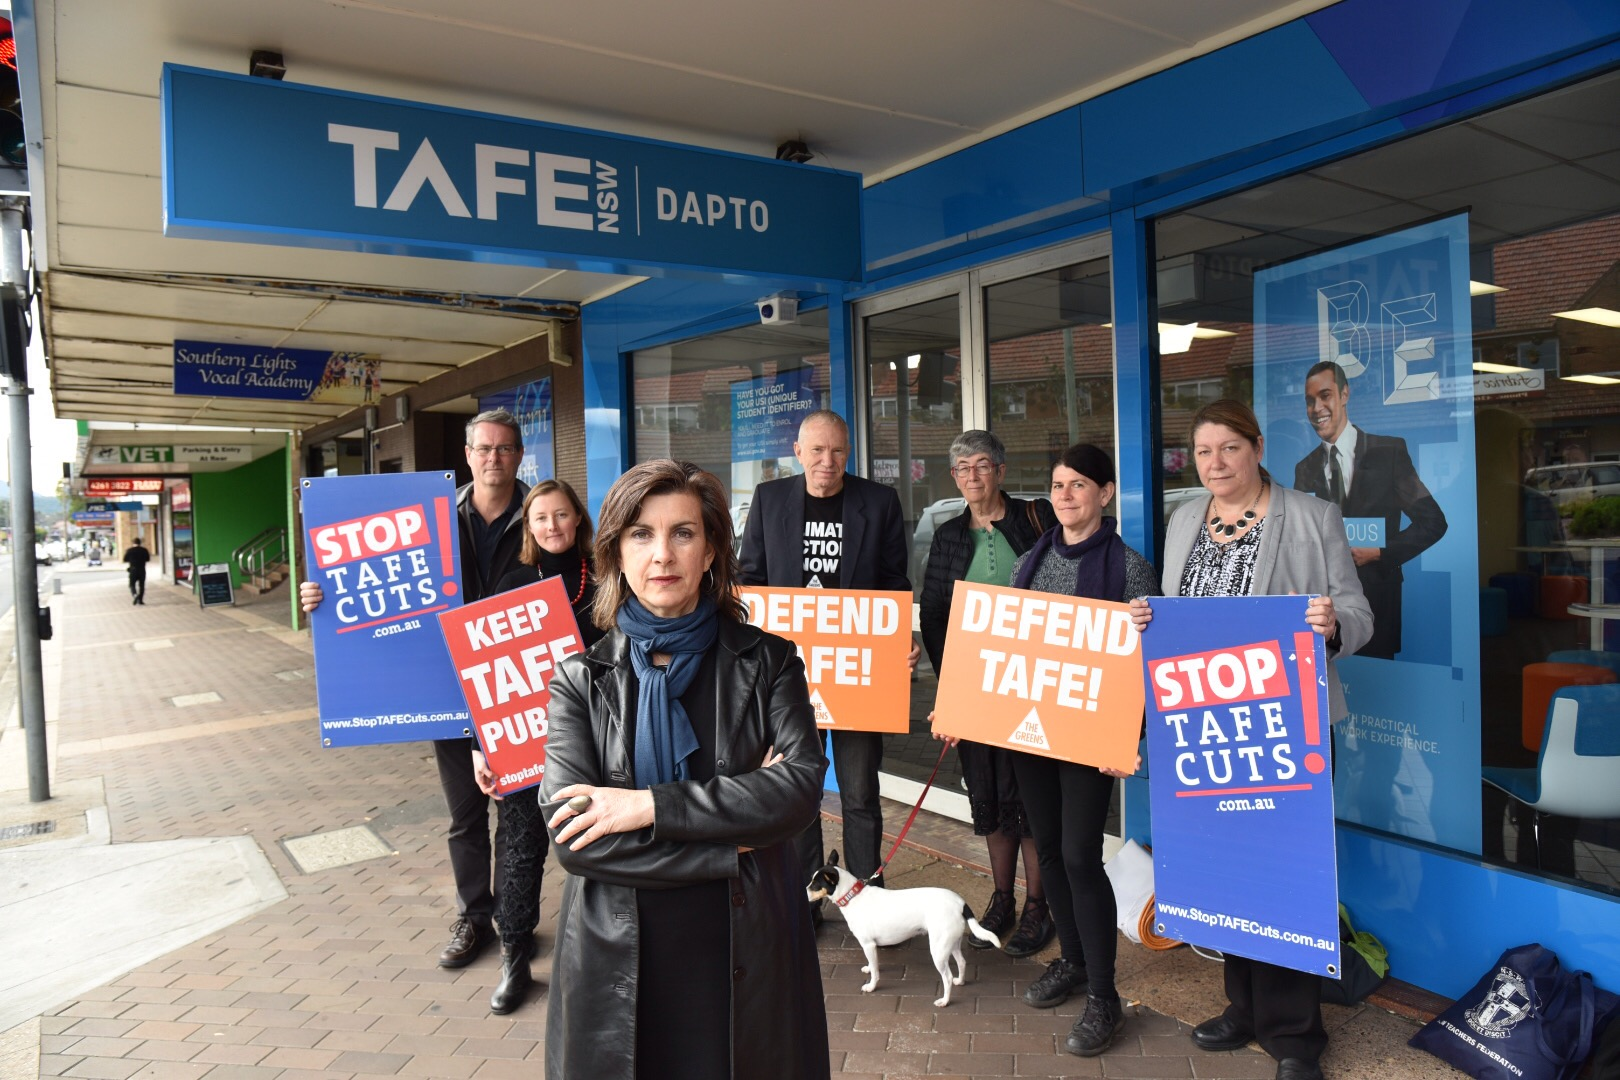 Minister admits under questioning that Dapto TAFE facilities are